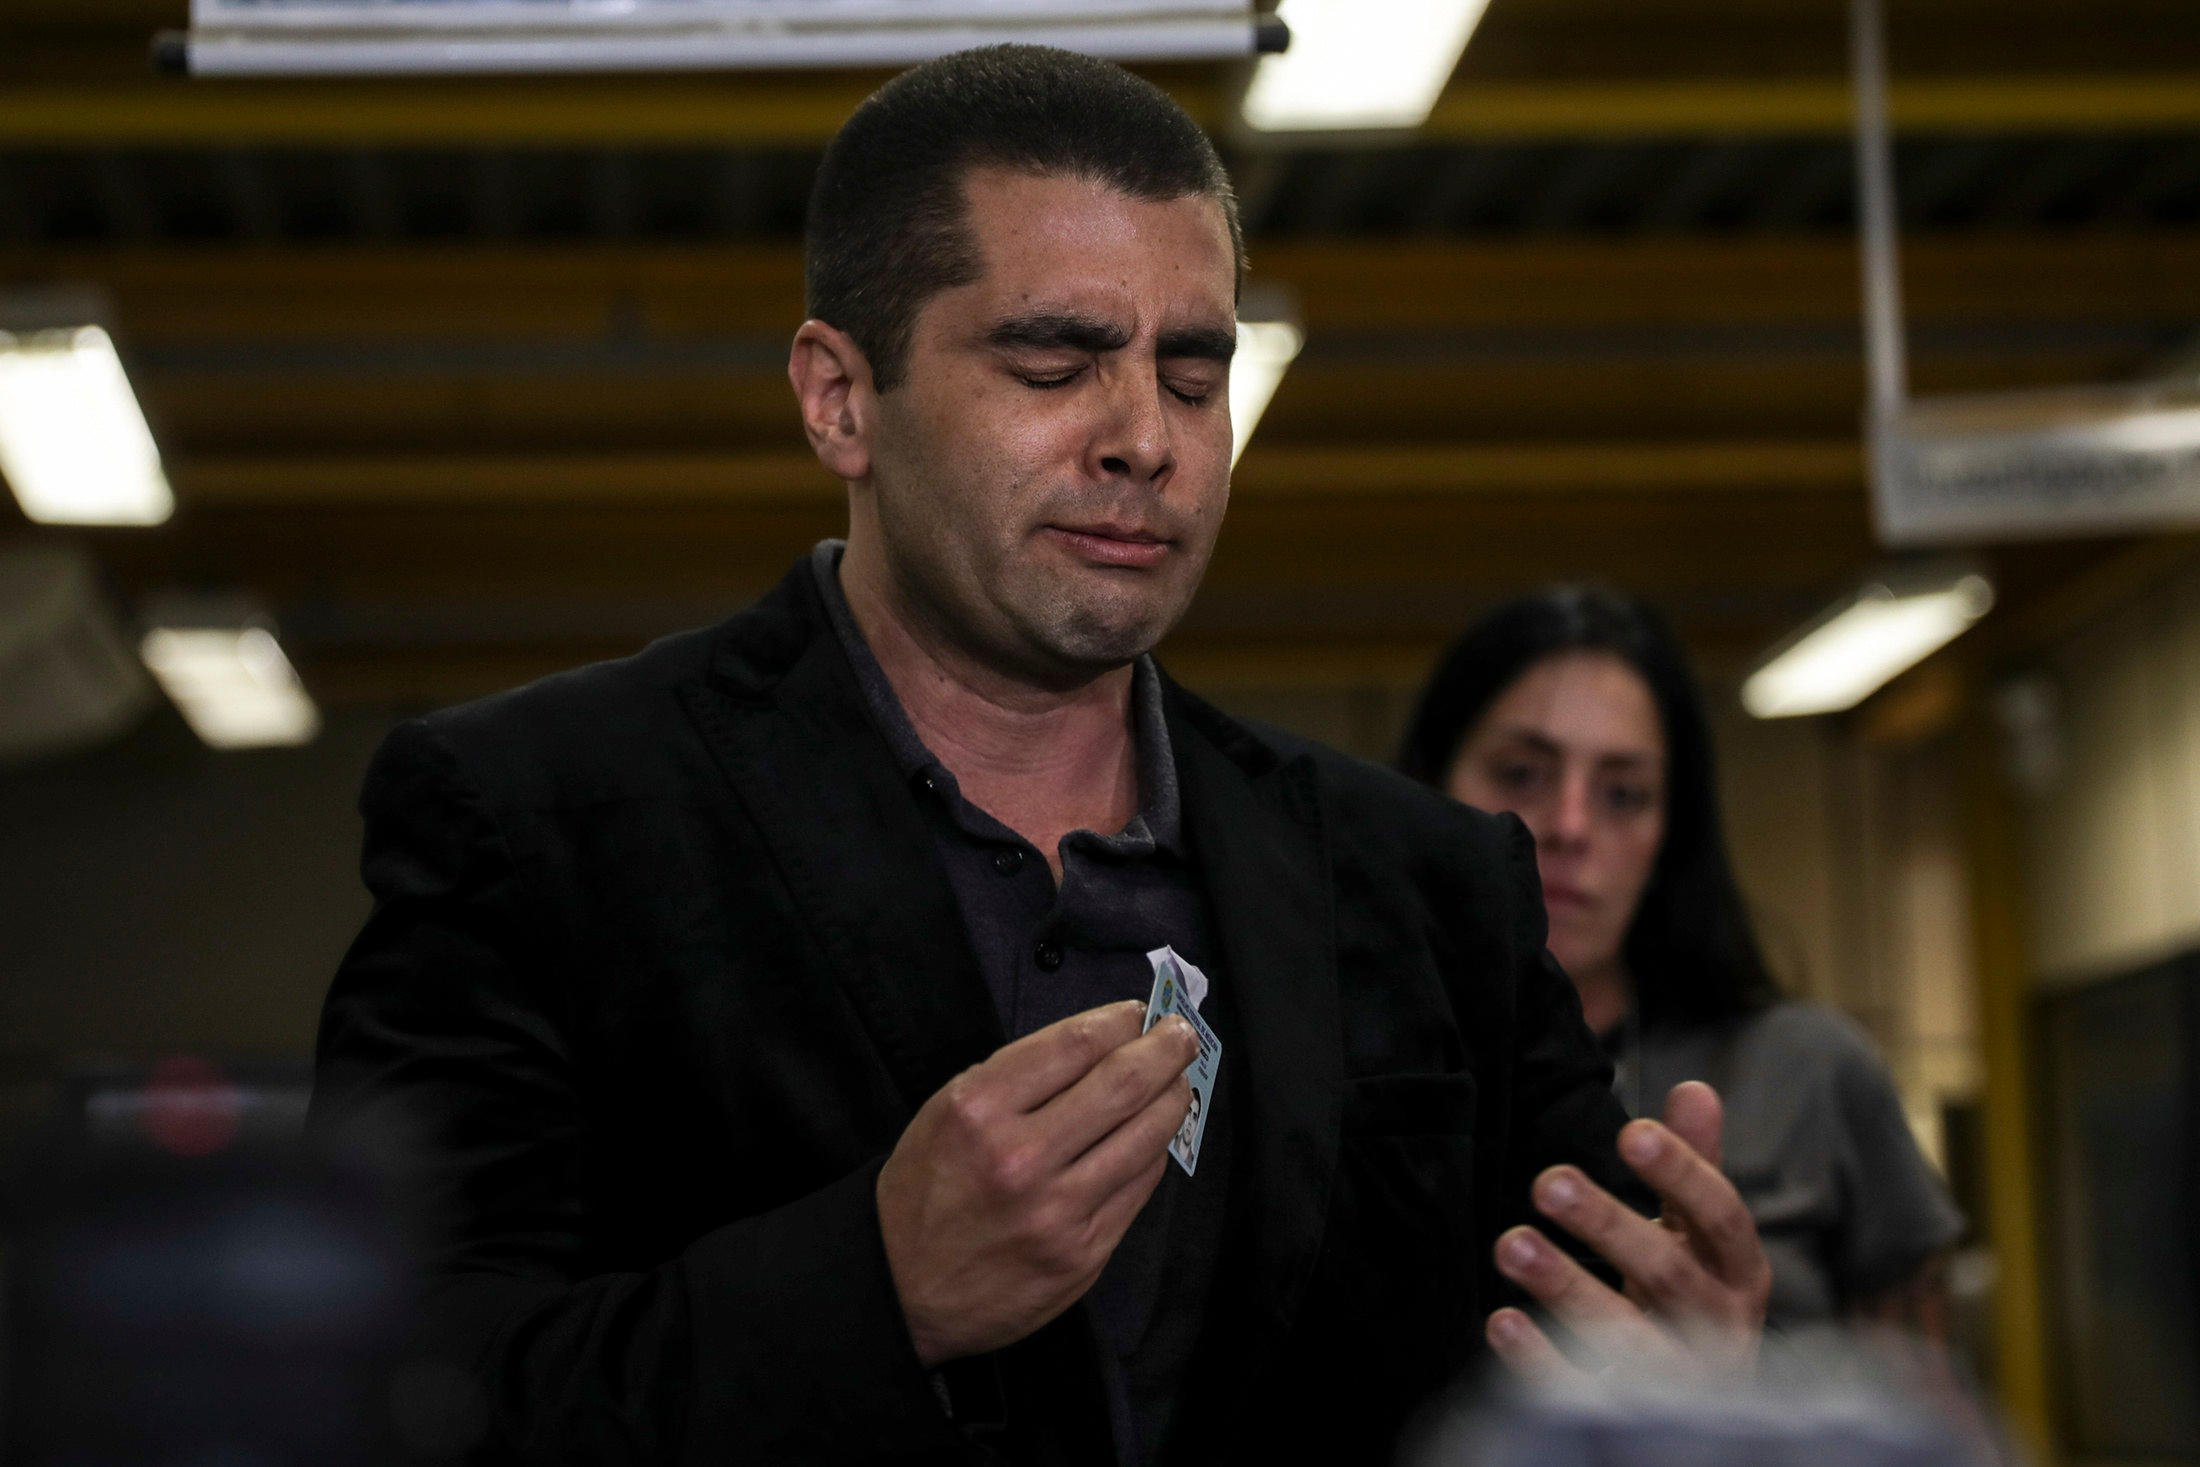 Alamy Live News. PA122X Rio De Janeiro, Brazil. 19th July, 2018. Brazilian doctor Denis Cesar Barros Furtado, widely known as 'Dr. Bumbum', addresses the media at a police station, in Rio de Janeiro, Brazil, 19 July 2018. The Police captures the plastic surgeon who was fugitive after one of his patients died during a clandestine surgery, in Rio de Janeiro. Credit: Antonio Lacerda/EFE/Alamy Live News This is an Alamy Live News image and may not be part of your current Alamy deal . If you are unsure, please contact our sales team to check.